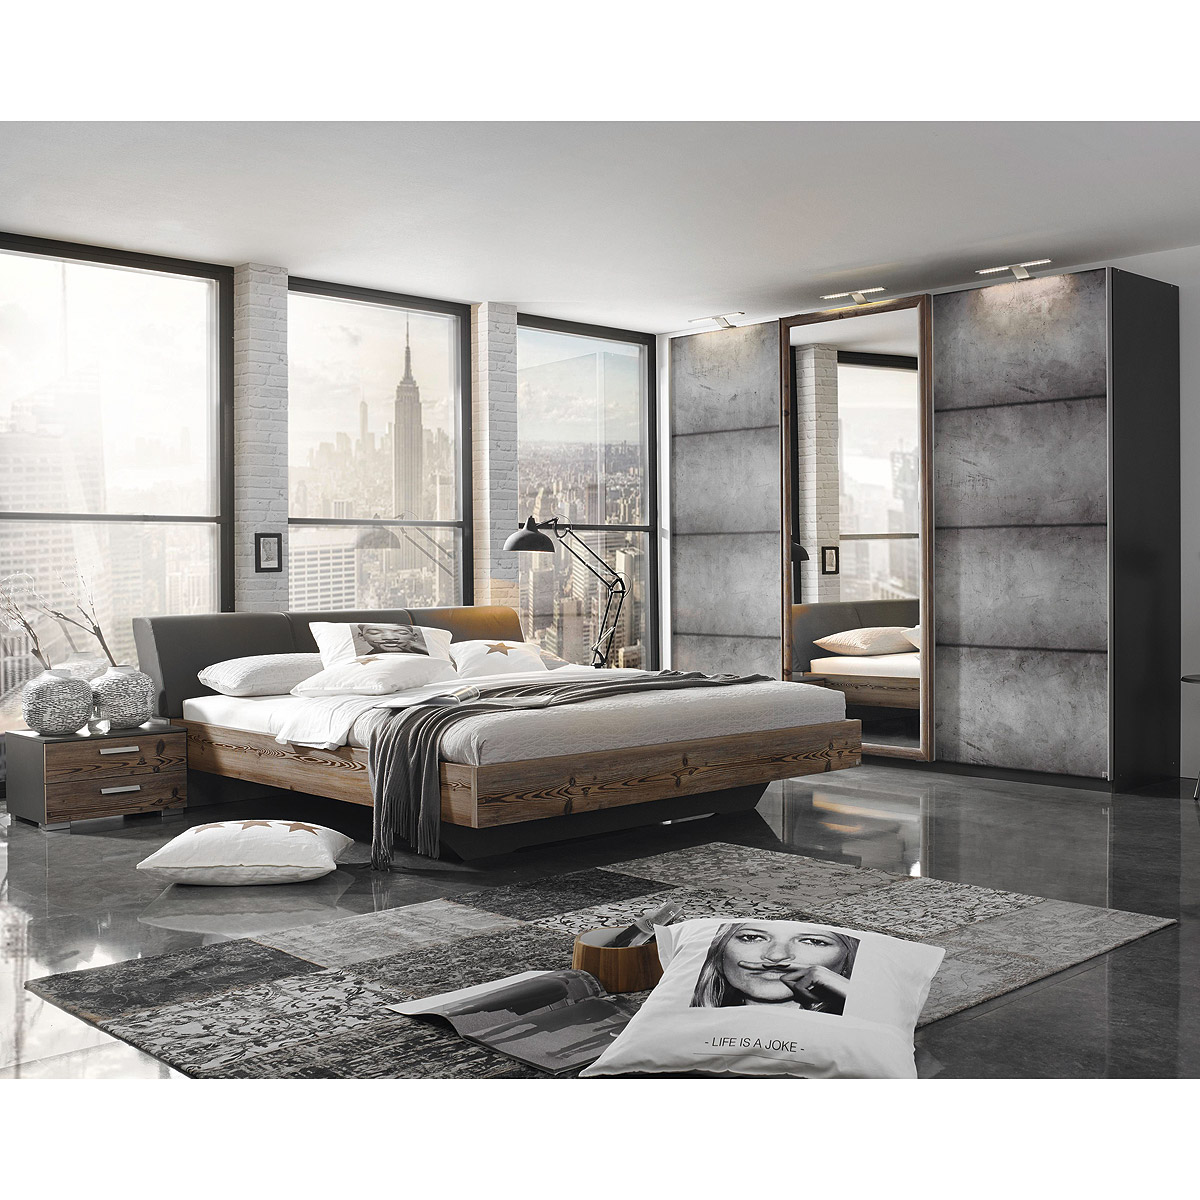 schlafzimmer set streetway kleiderschrank bett nakos l rche basalt beton optik ebay. Black Bedroom Furniture Sets. Home Design Ideas